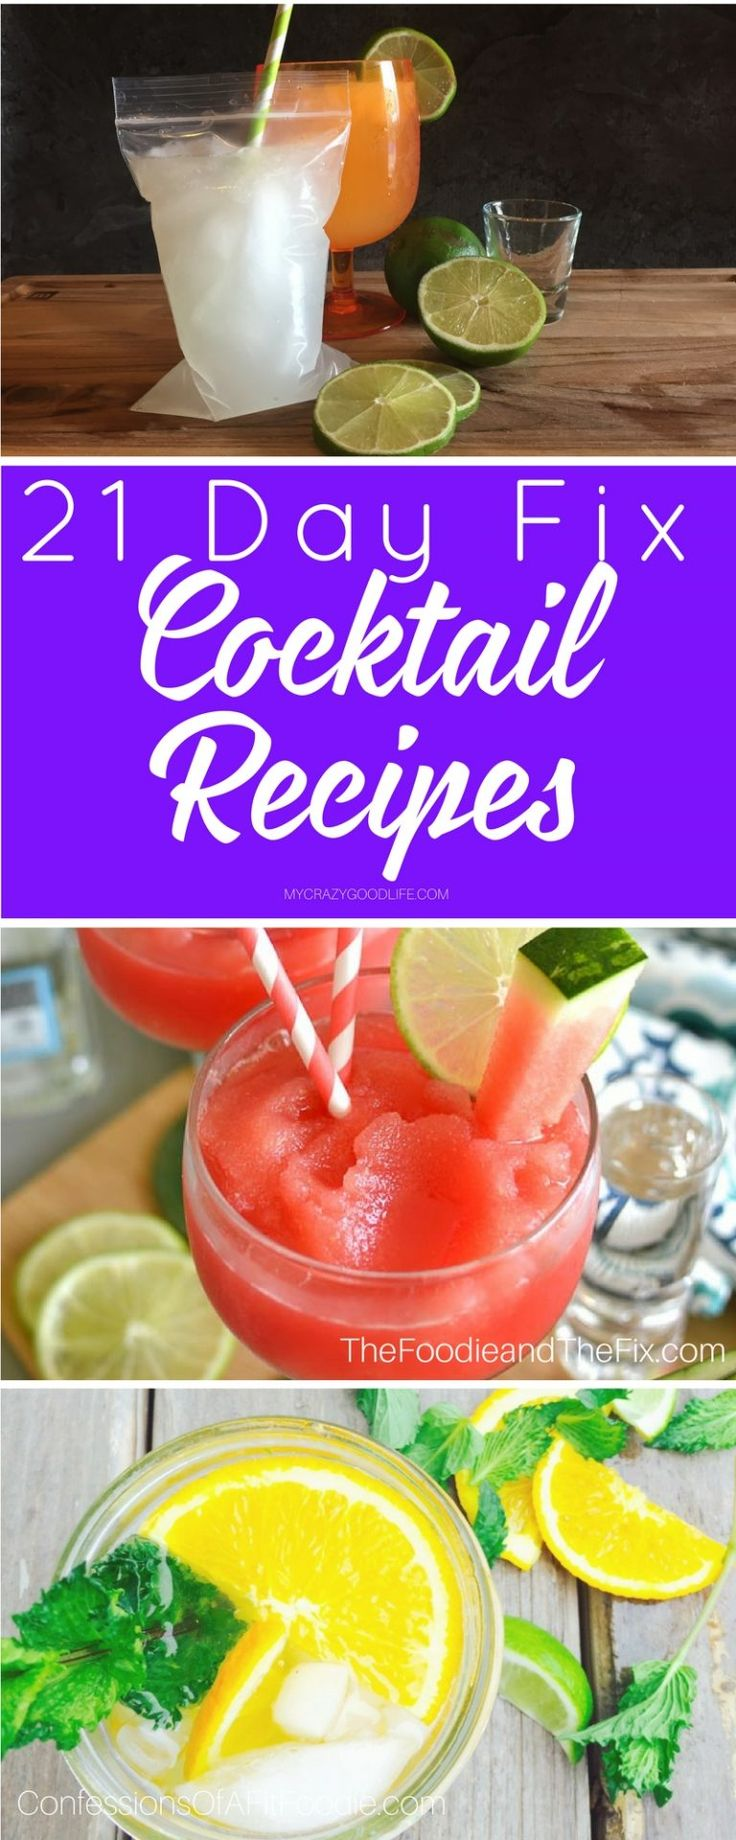 You don't have to skip out on the drinks to be part of the 21 day fix diet plan. Use these 21 Day Fix Cocktail Recipes to stay on track!